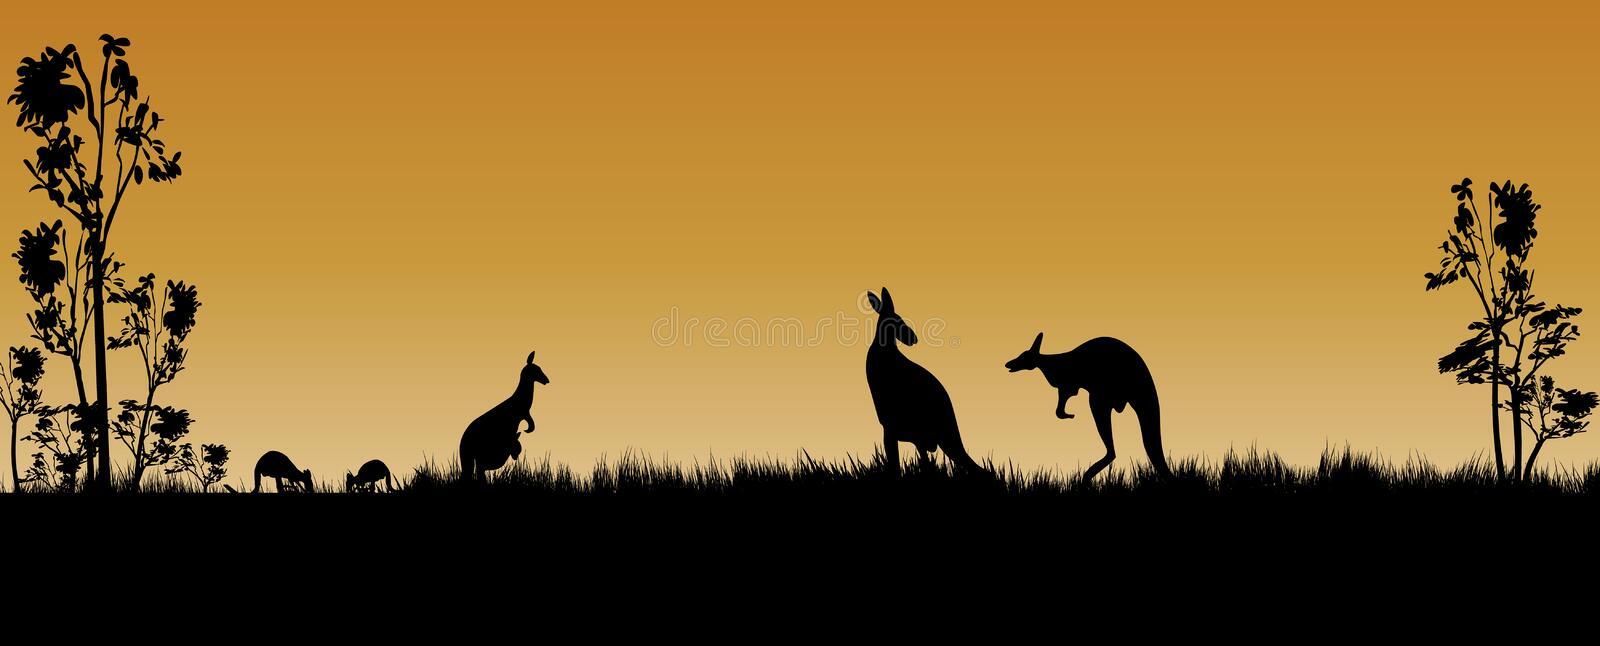 Kangaroos and trees as a silhouette in the sunset. Kangaroos and trees as a silhouette in the Australian sunset stock illustration